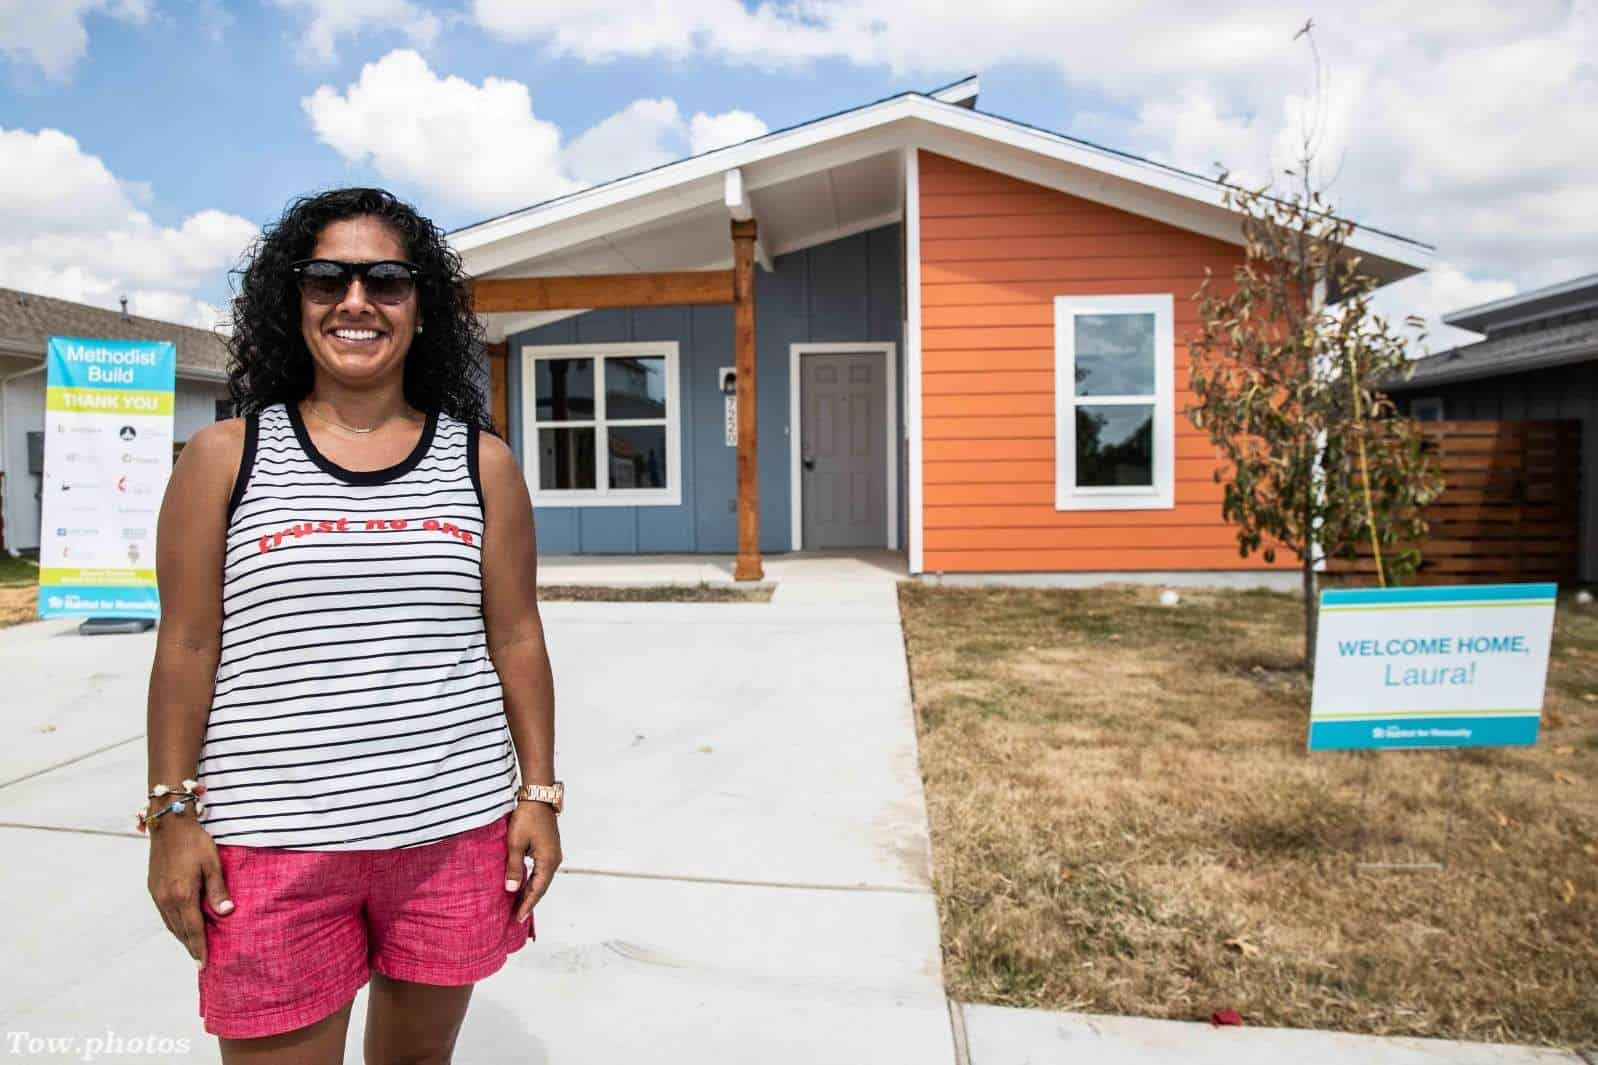 Texas Tow Company Dispatcher has a new house  - The Good, The Bad